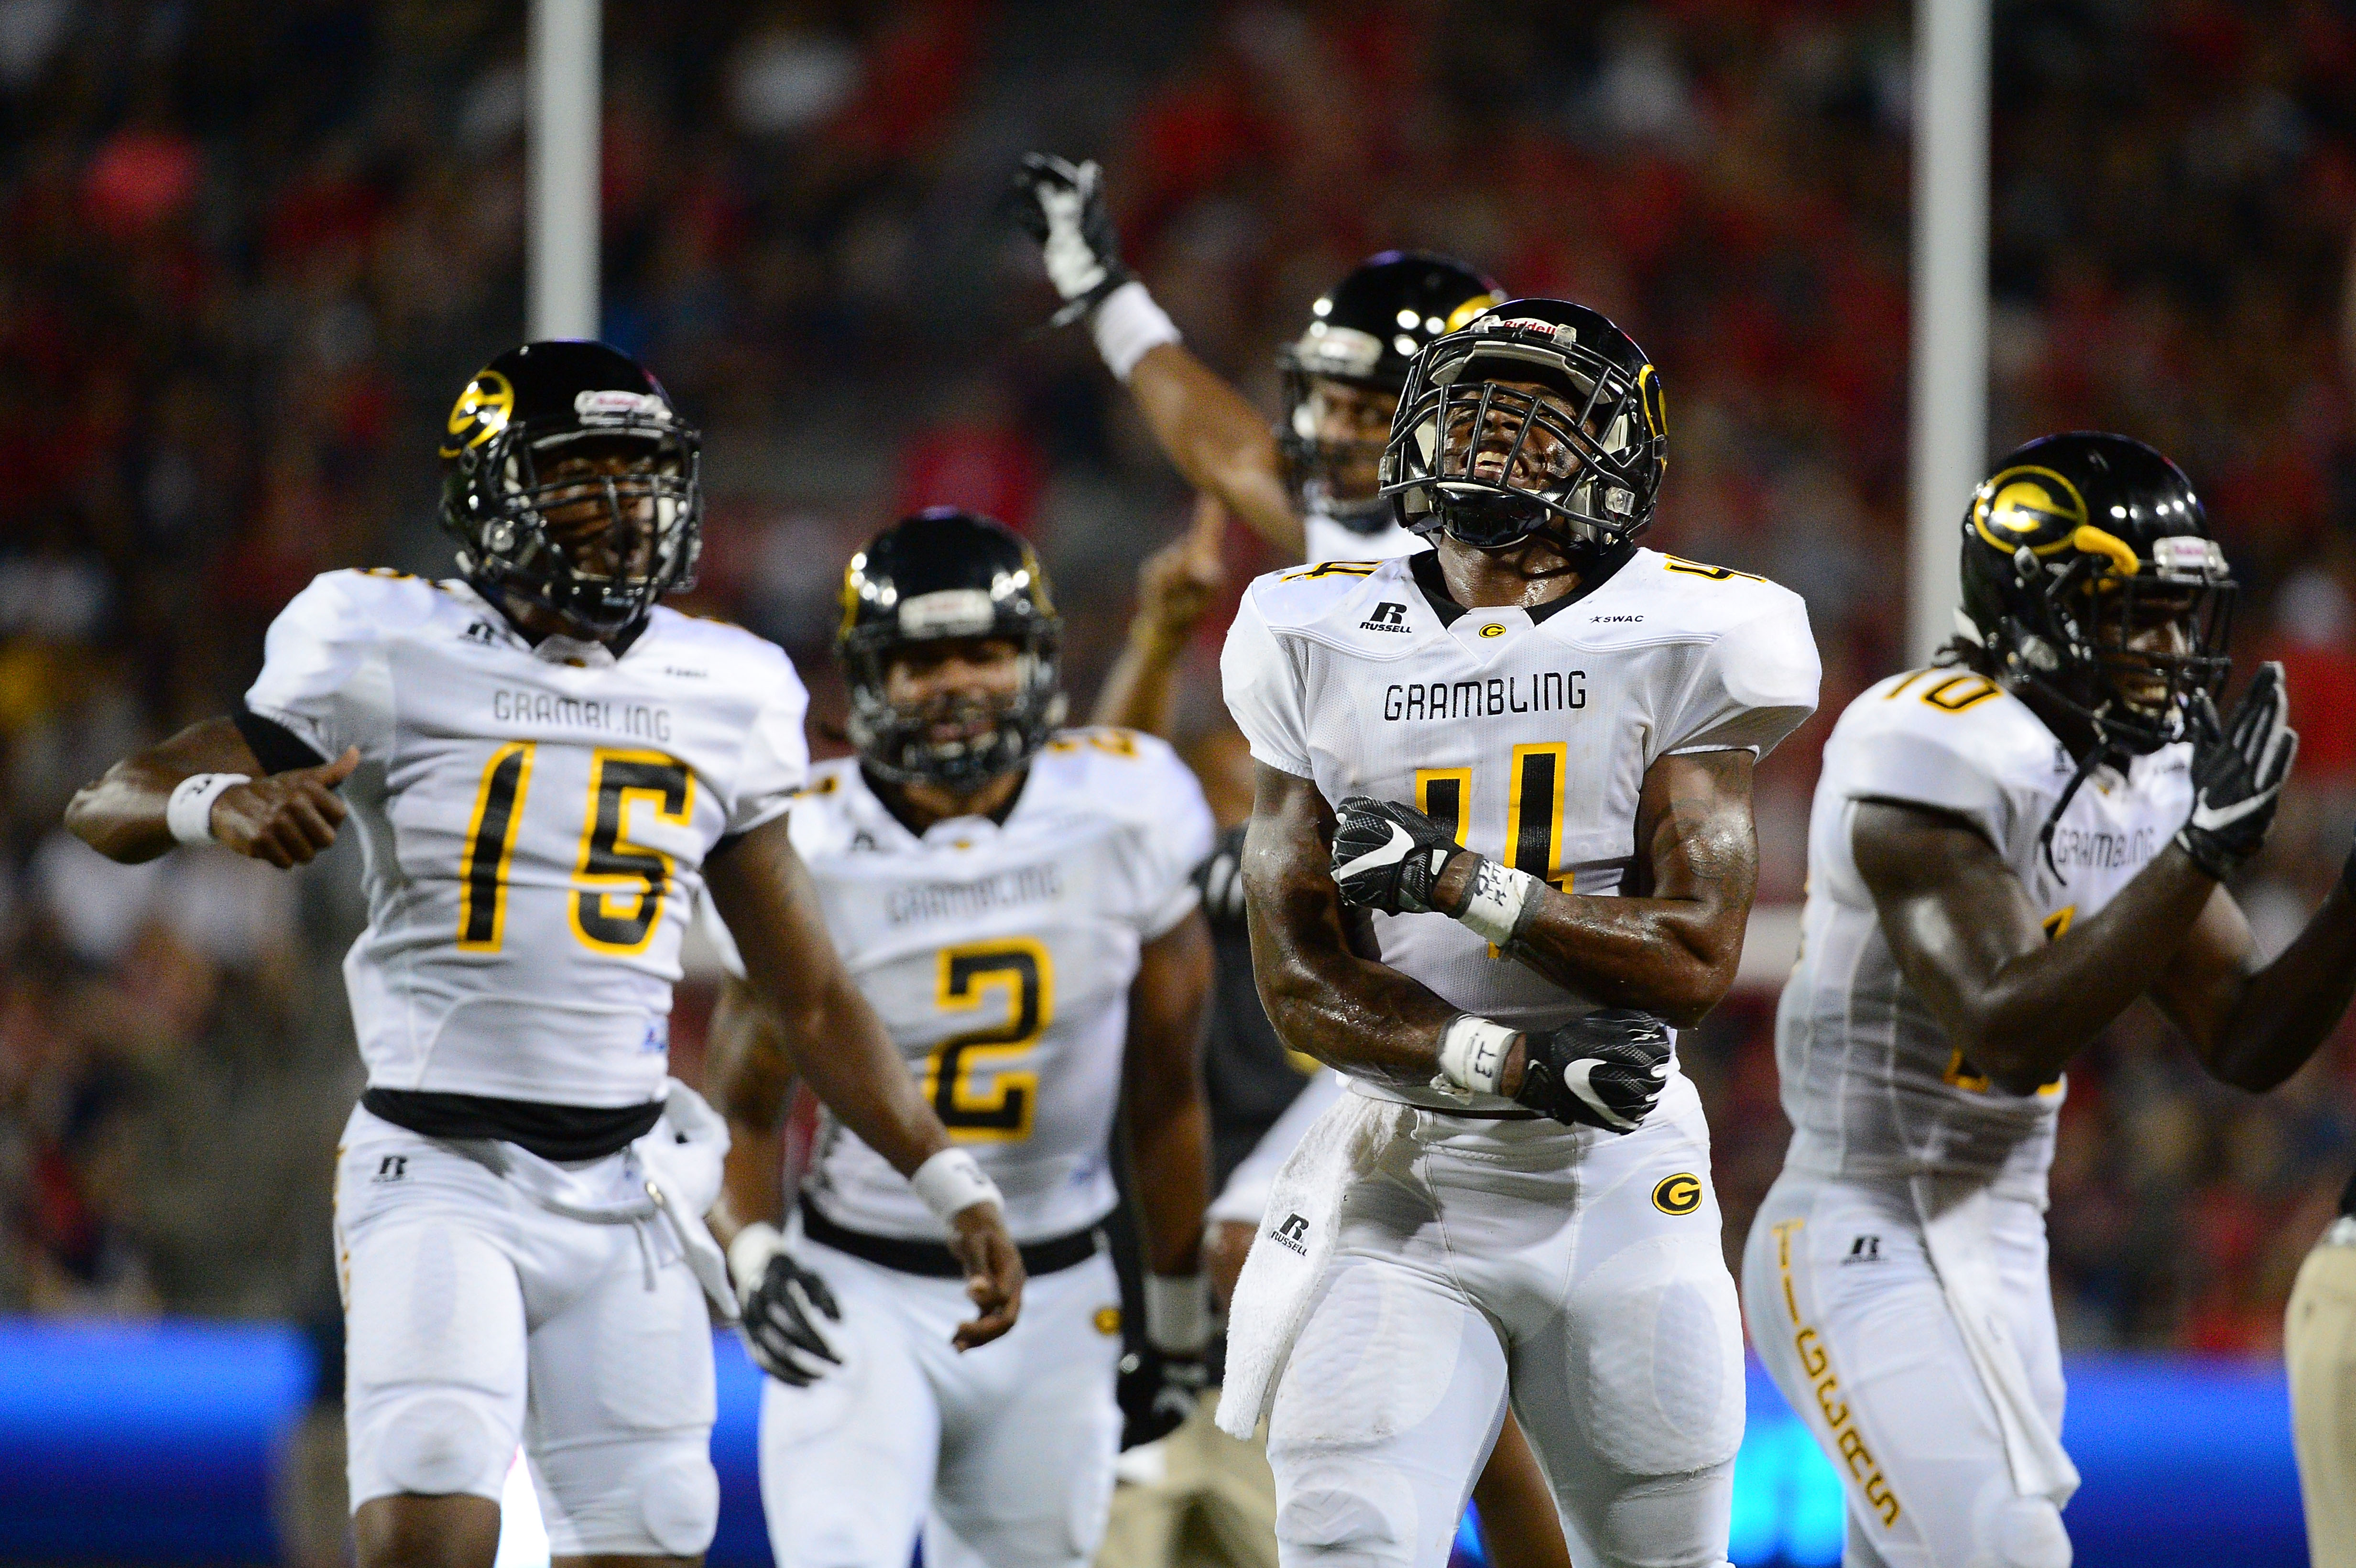 TUCSON, AZ - SEPTEMBER 10: Wide receiver Martez Carter #4 of the Grambling State Tigers celebrates with teammates after scoring a touchdown against the Arizona Wildcats in the second quarter at Arizona Stadium on September 10, 2016 in Tucson, Arizona.